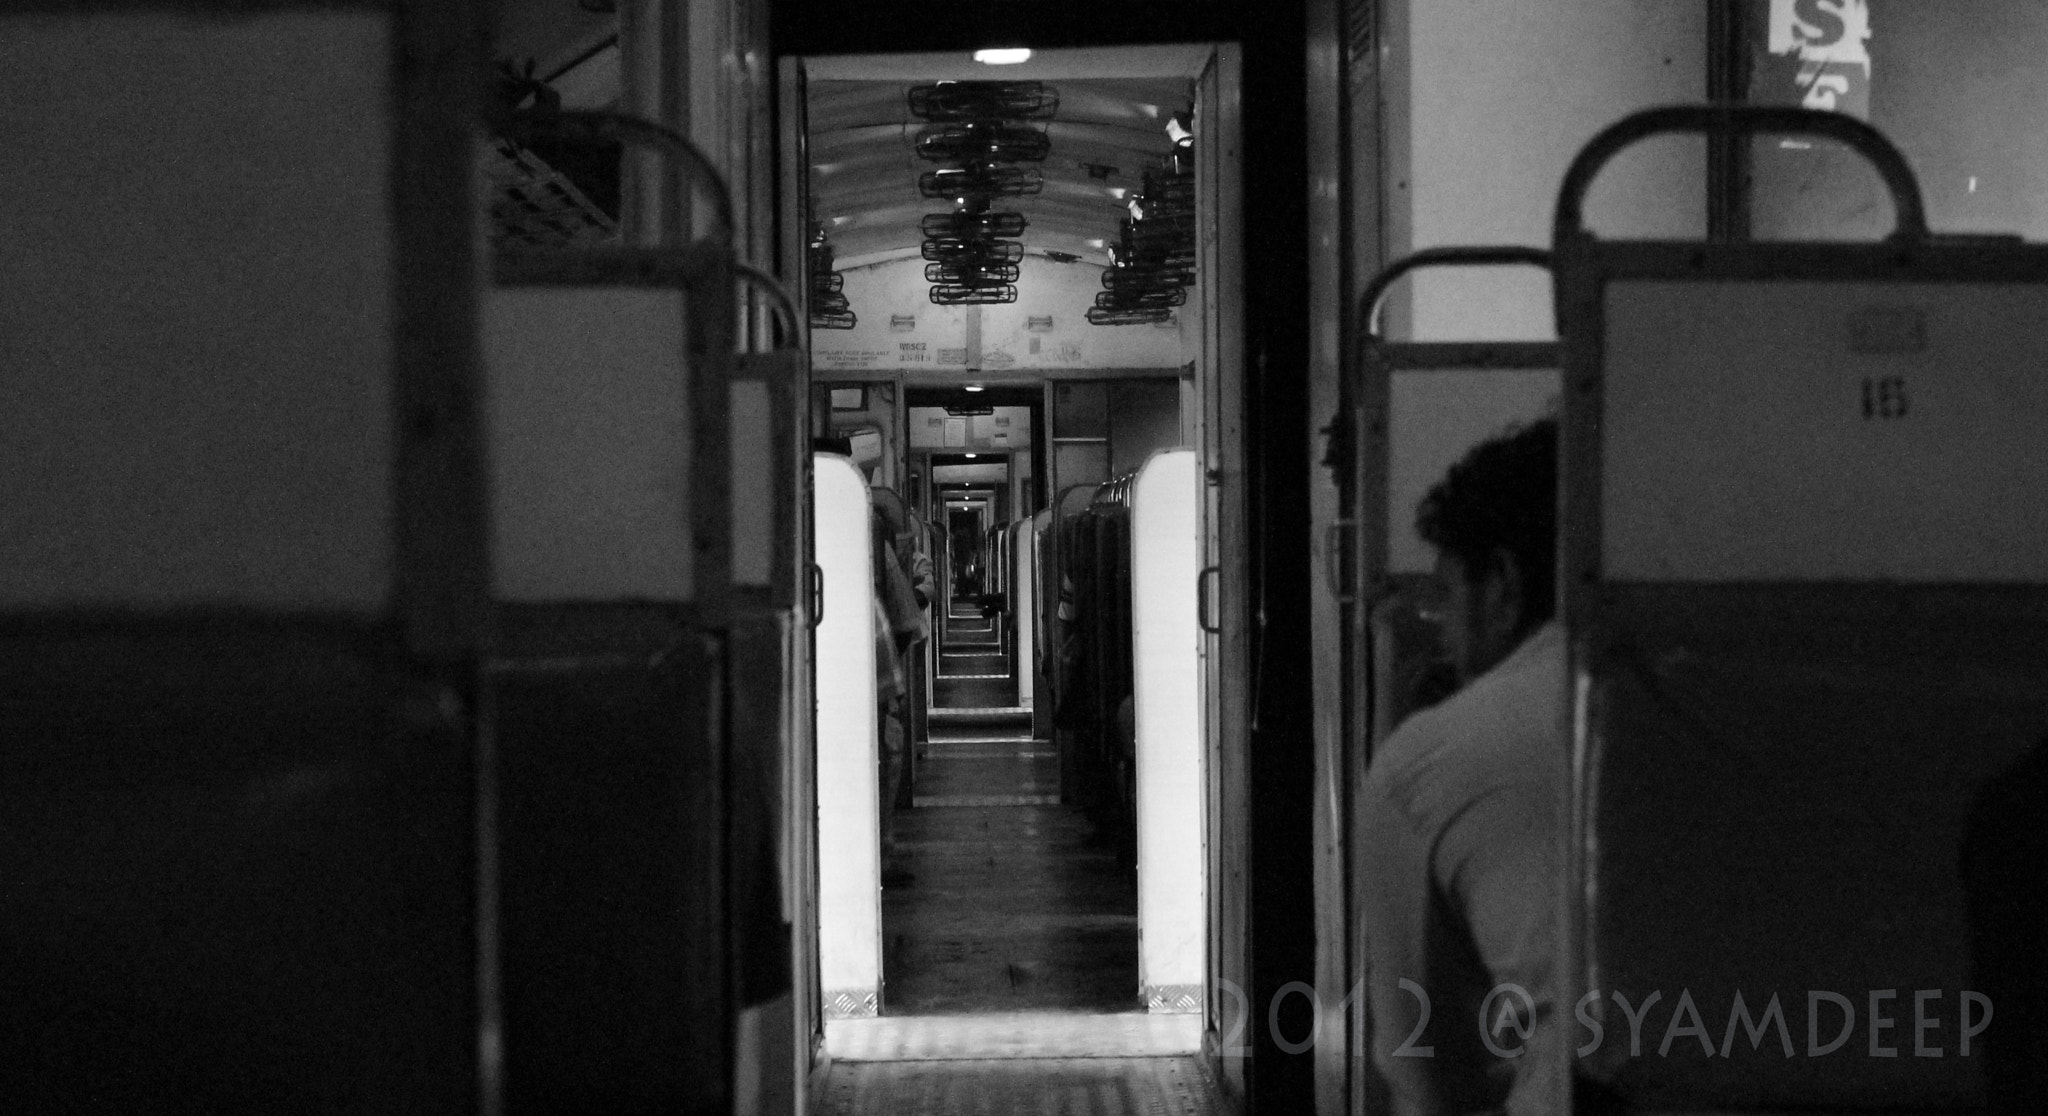 Photograph Route 2 - Metro by Syamdeep Sasidharan on 500px